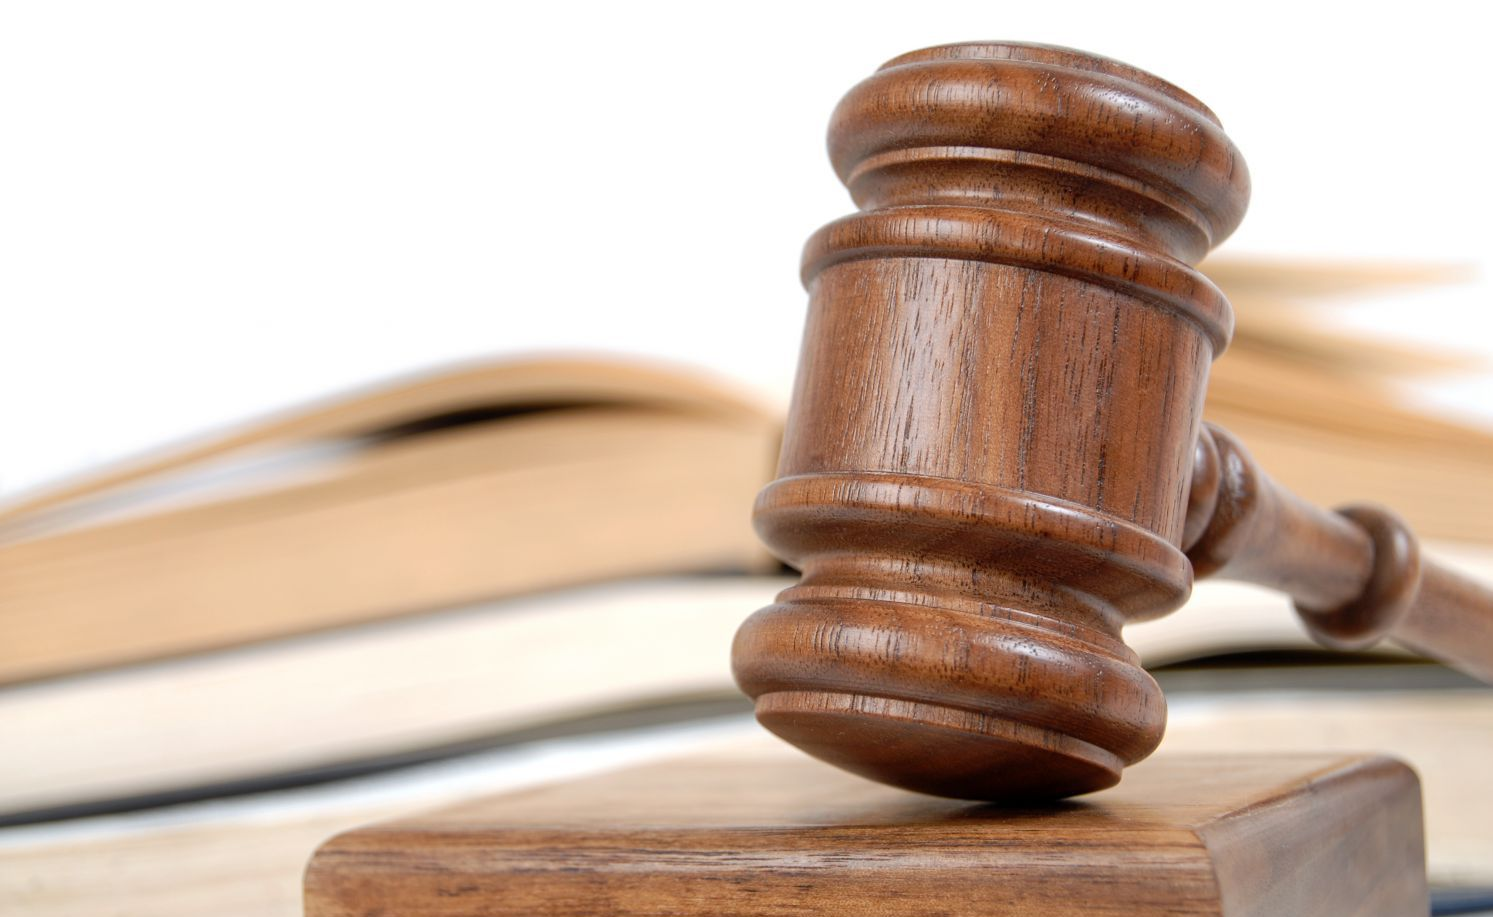 Gavel for local attorneys in High Point, NC